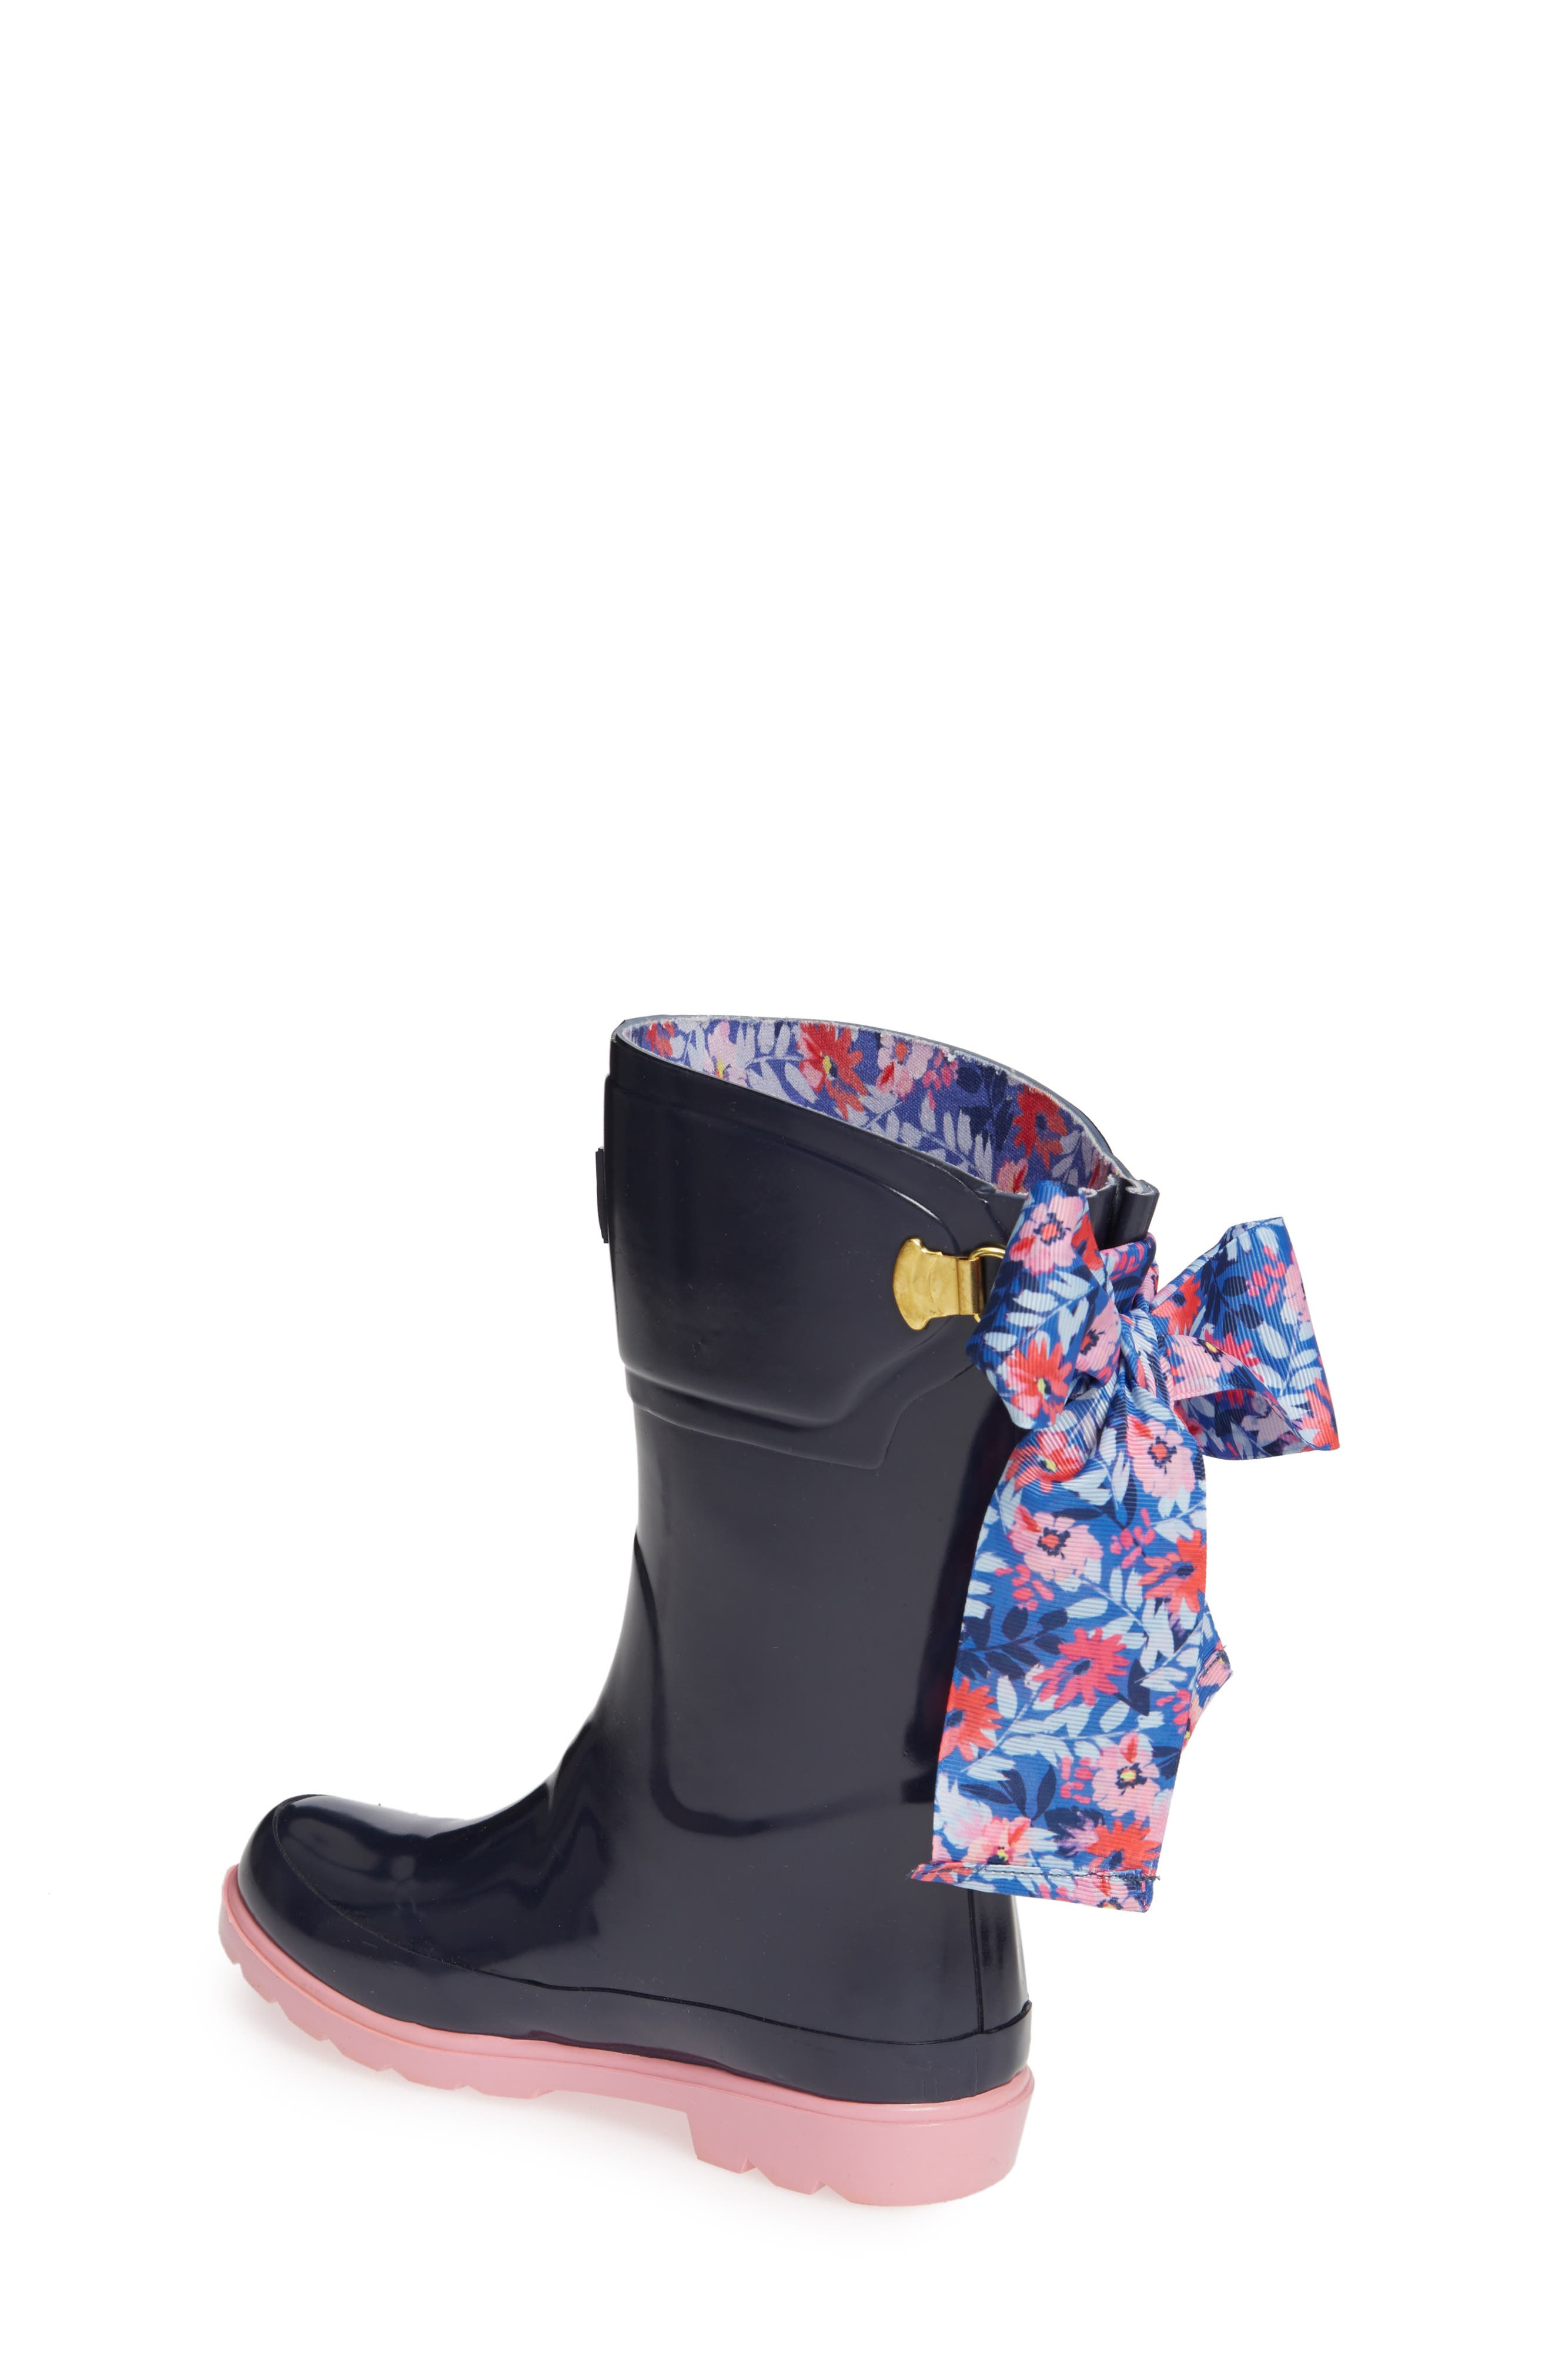 Bow Welly Waterproof Rain Boot,                             Alternate thumbnail 2, color,                             FRENCH NAVY